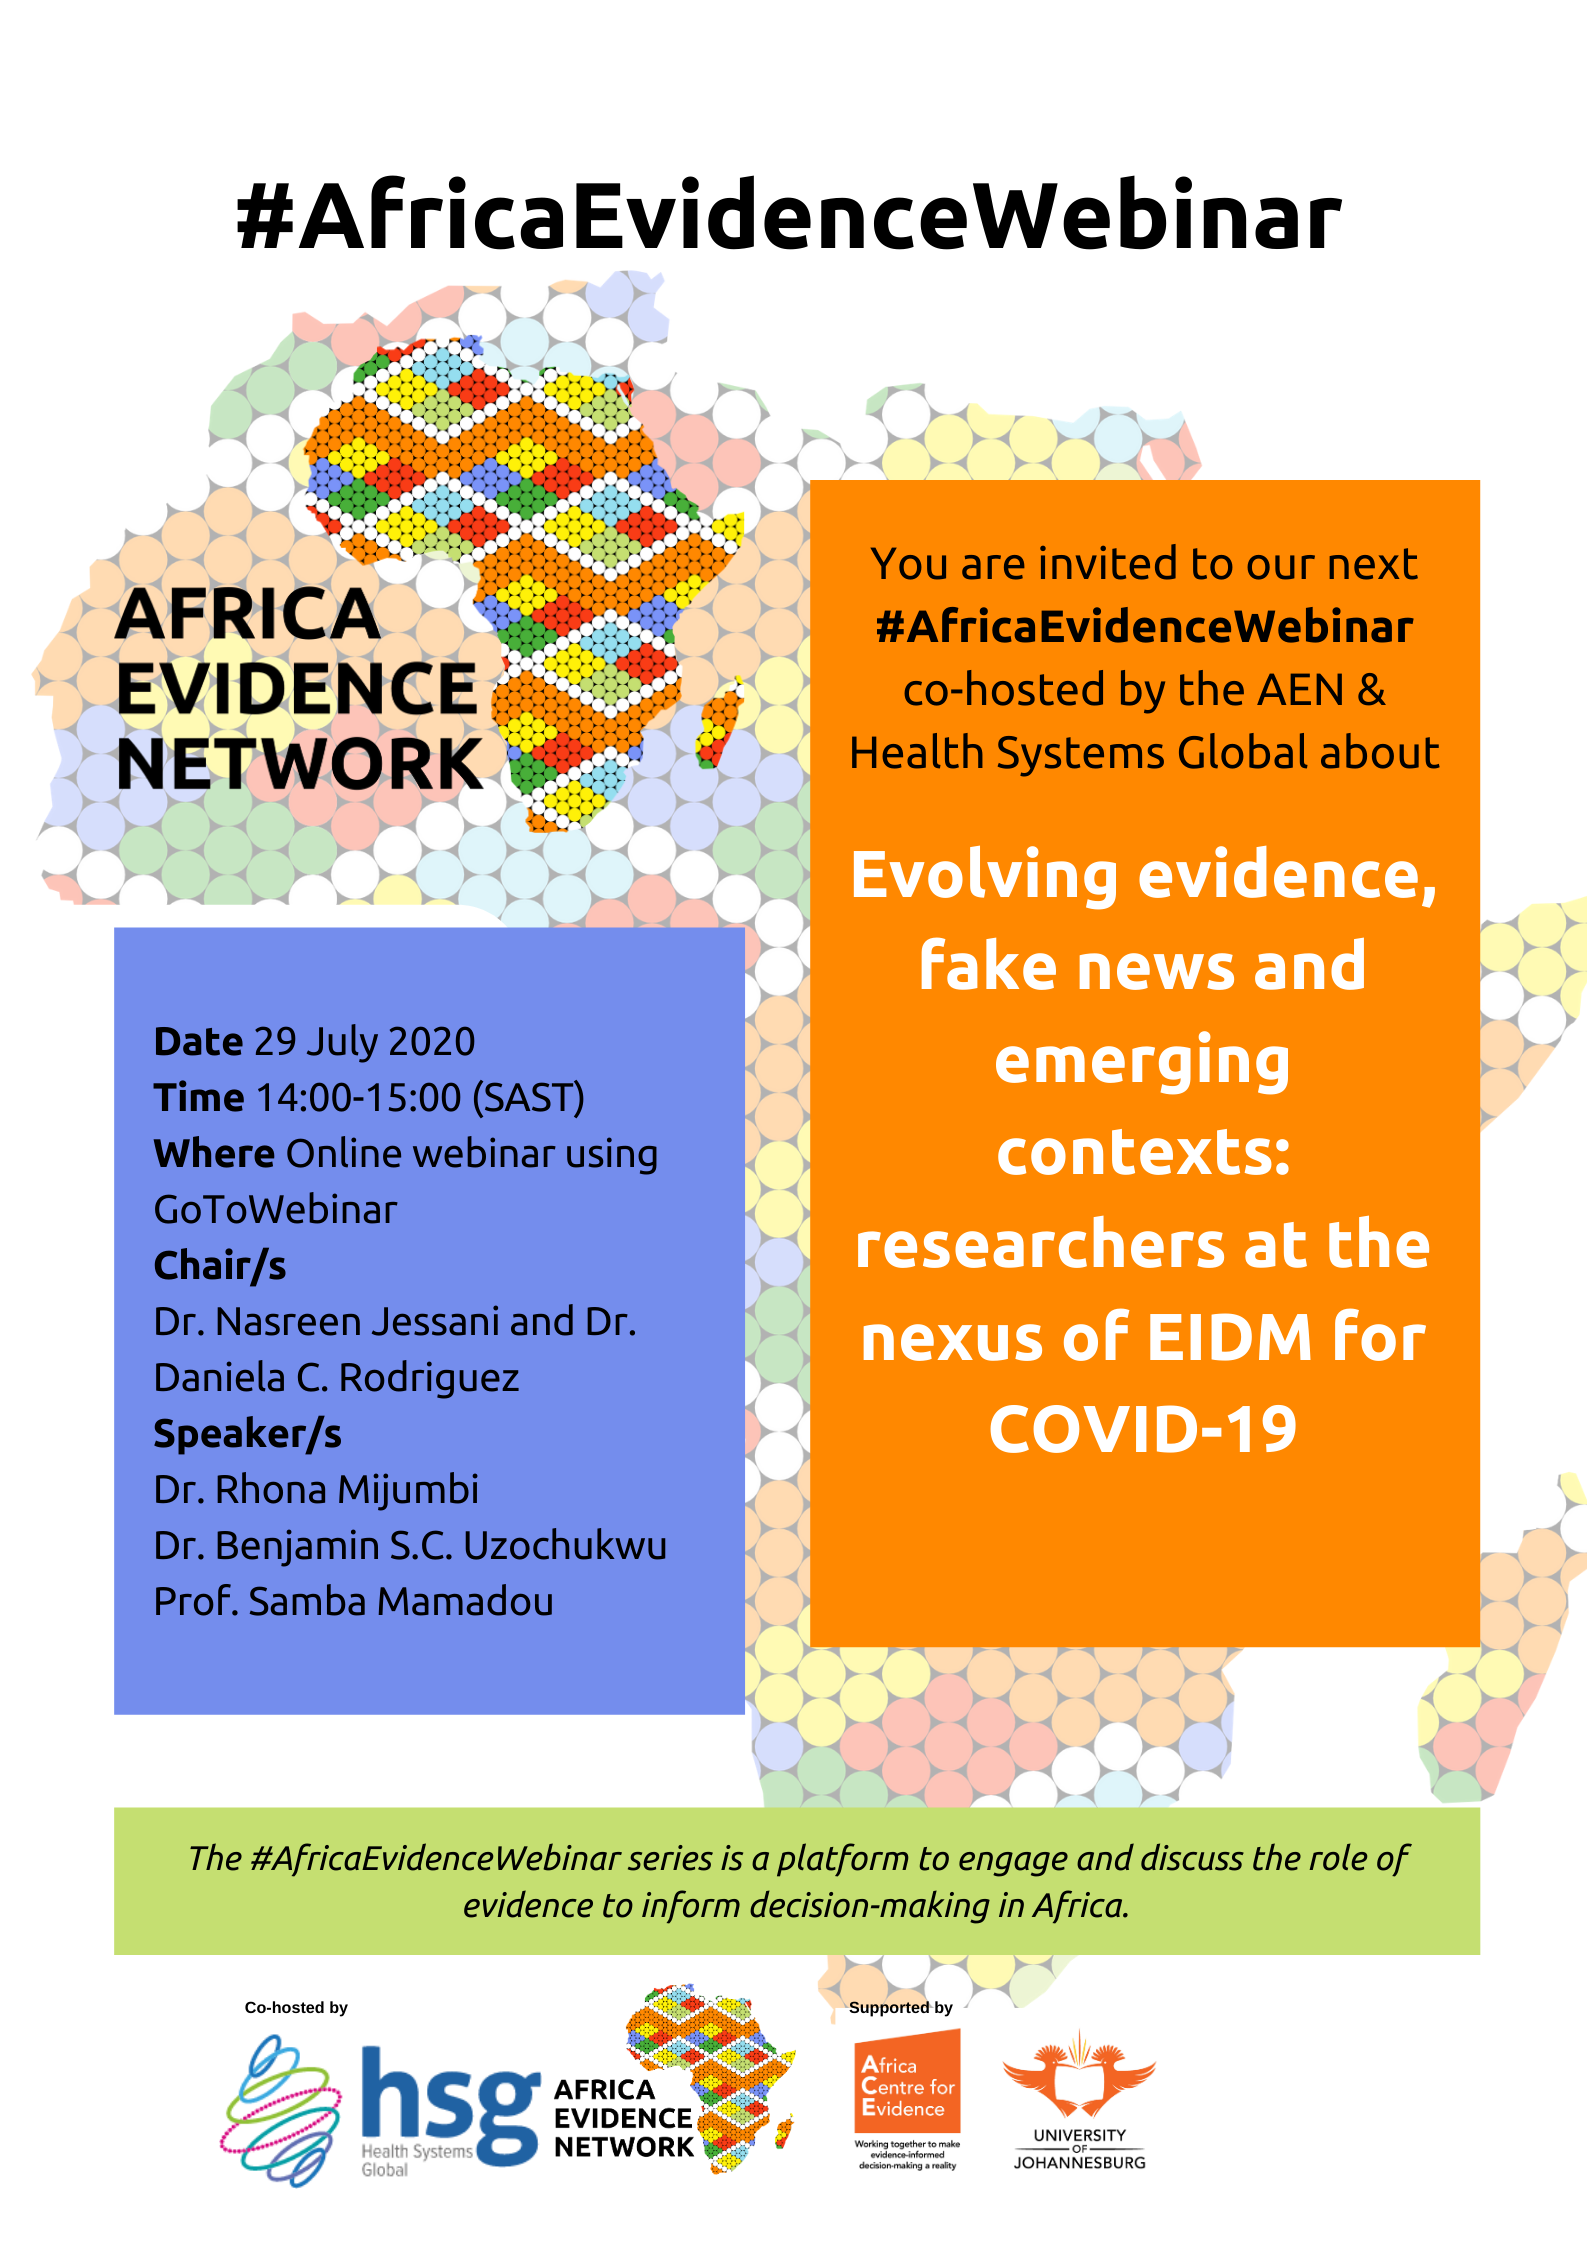 Africa Evidence Webinar #8: Evolvingevidence, fake news, and emerging contexts: researchers at the nexus of EIDM for COVID-19